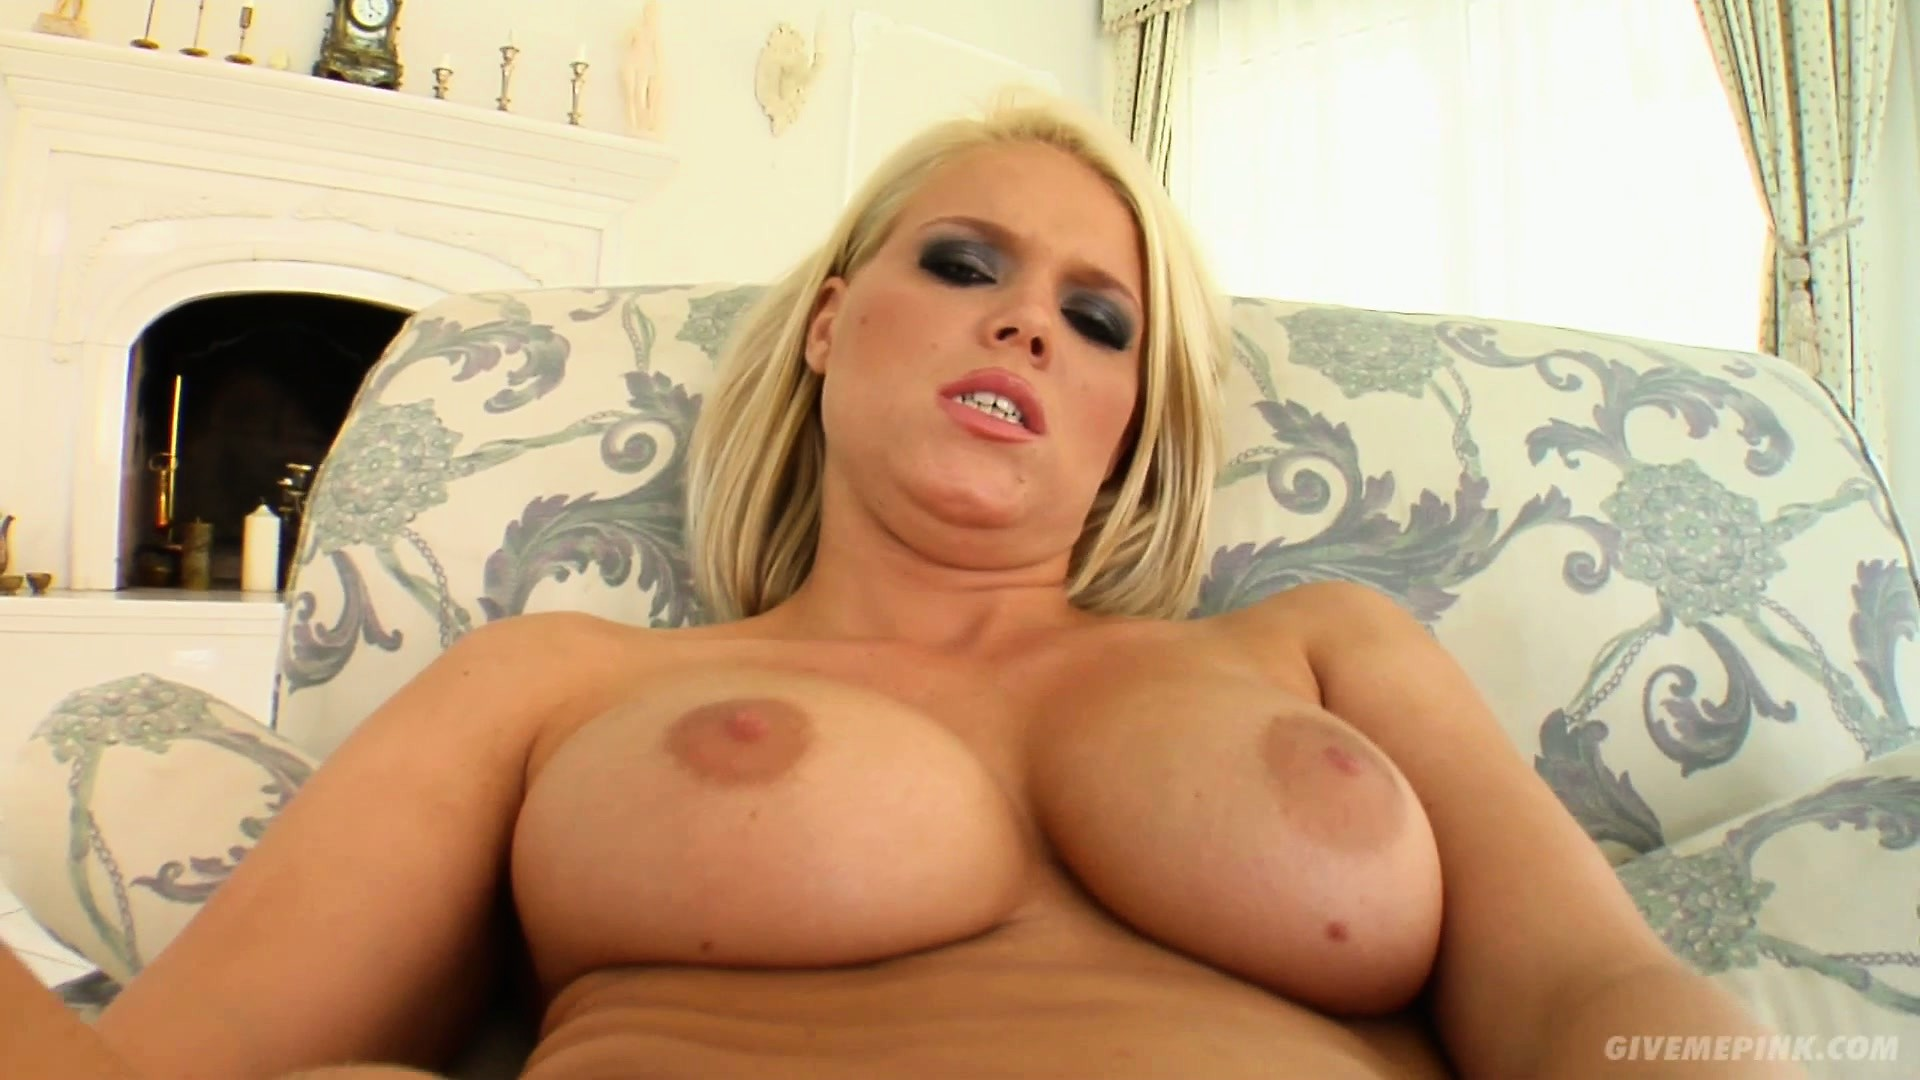 Porno Video of Busty Blonde Milf Trisha Takes Her Pink Vibrating Dildo Deep In Her Snatch